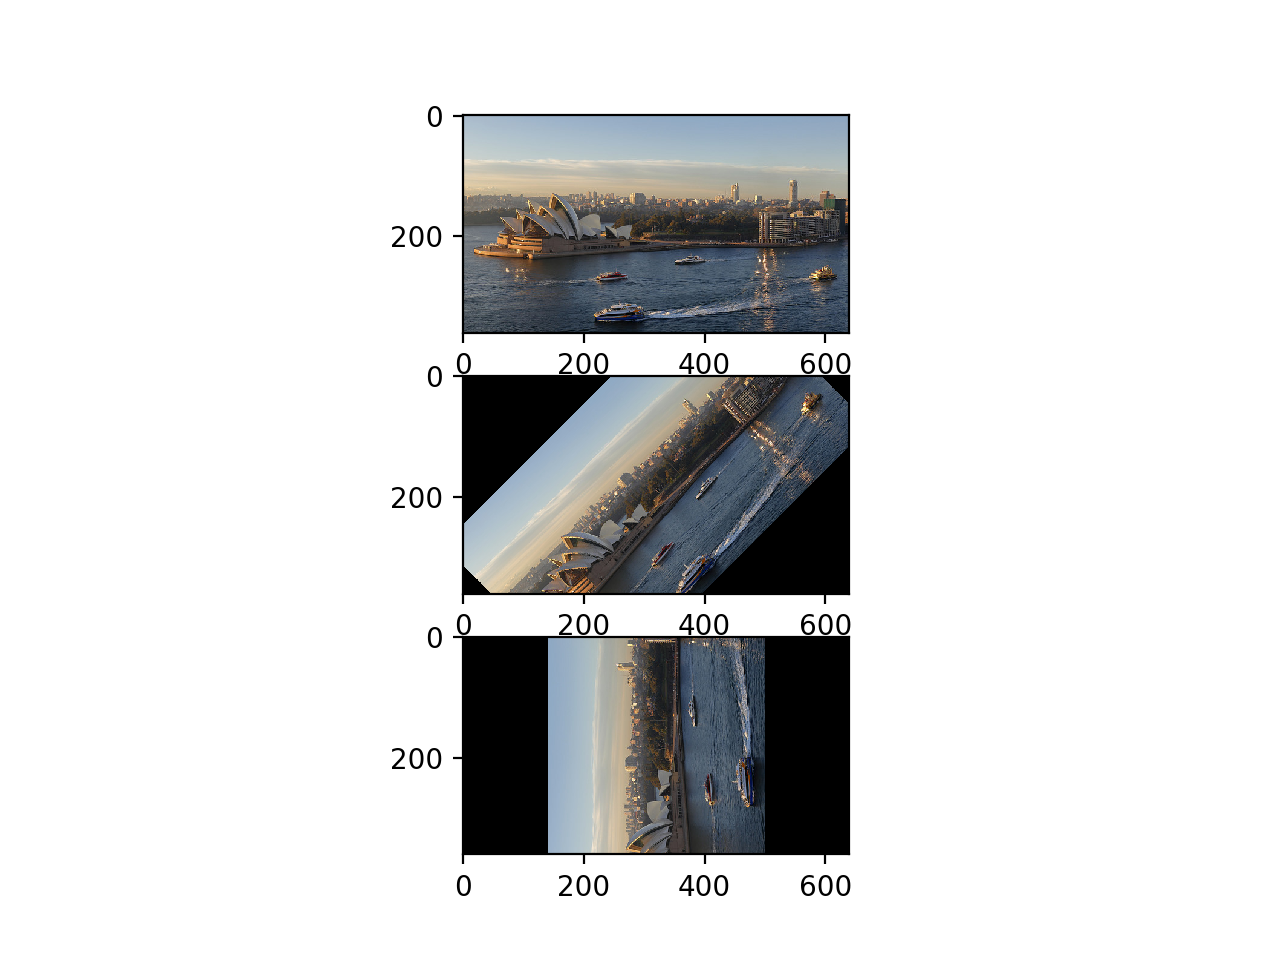 Plot of Original and Rotated Version of a Photograph